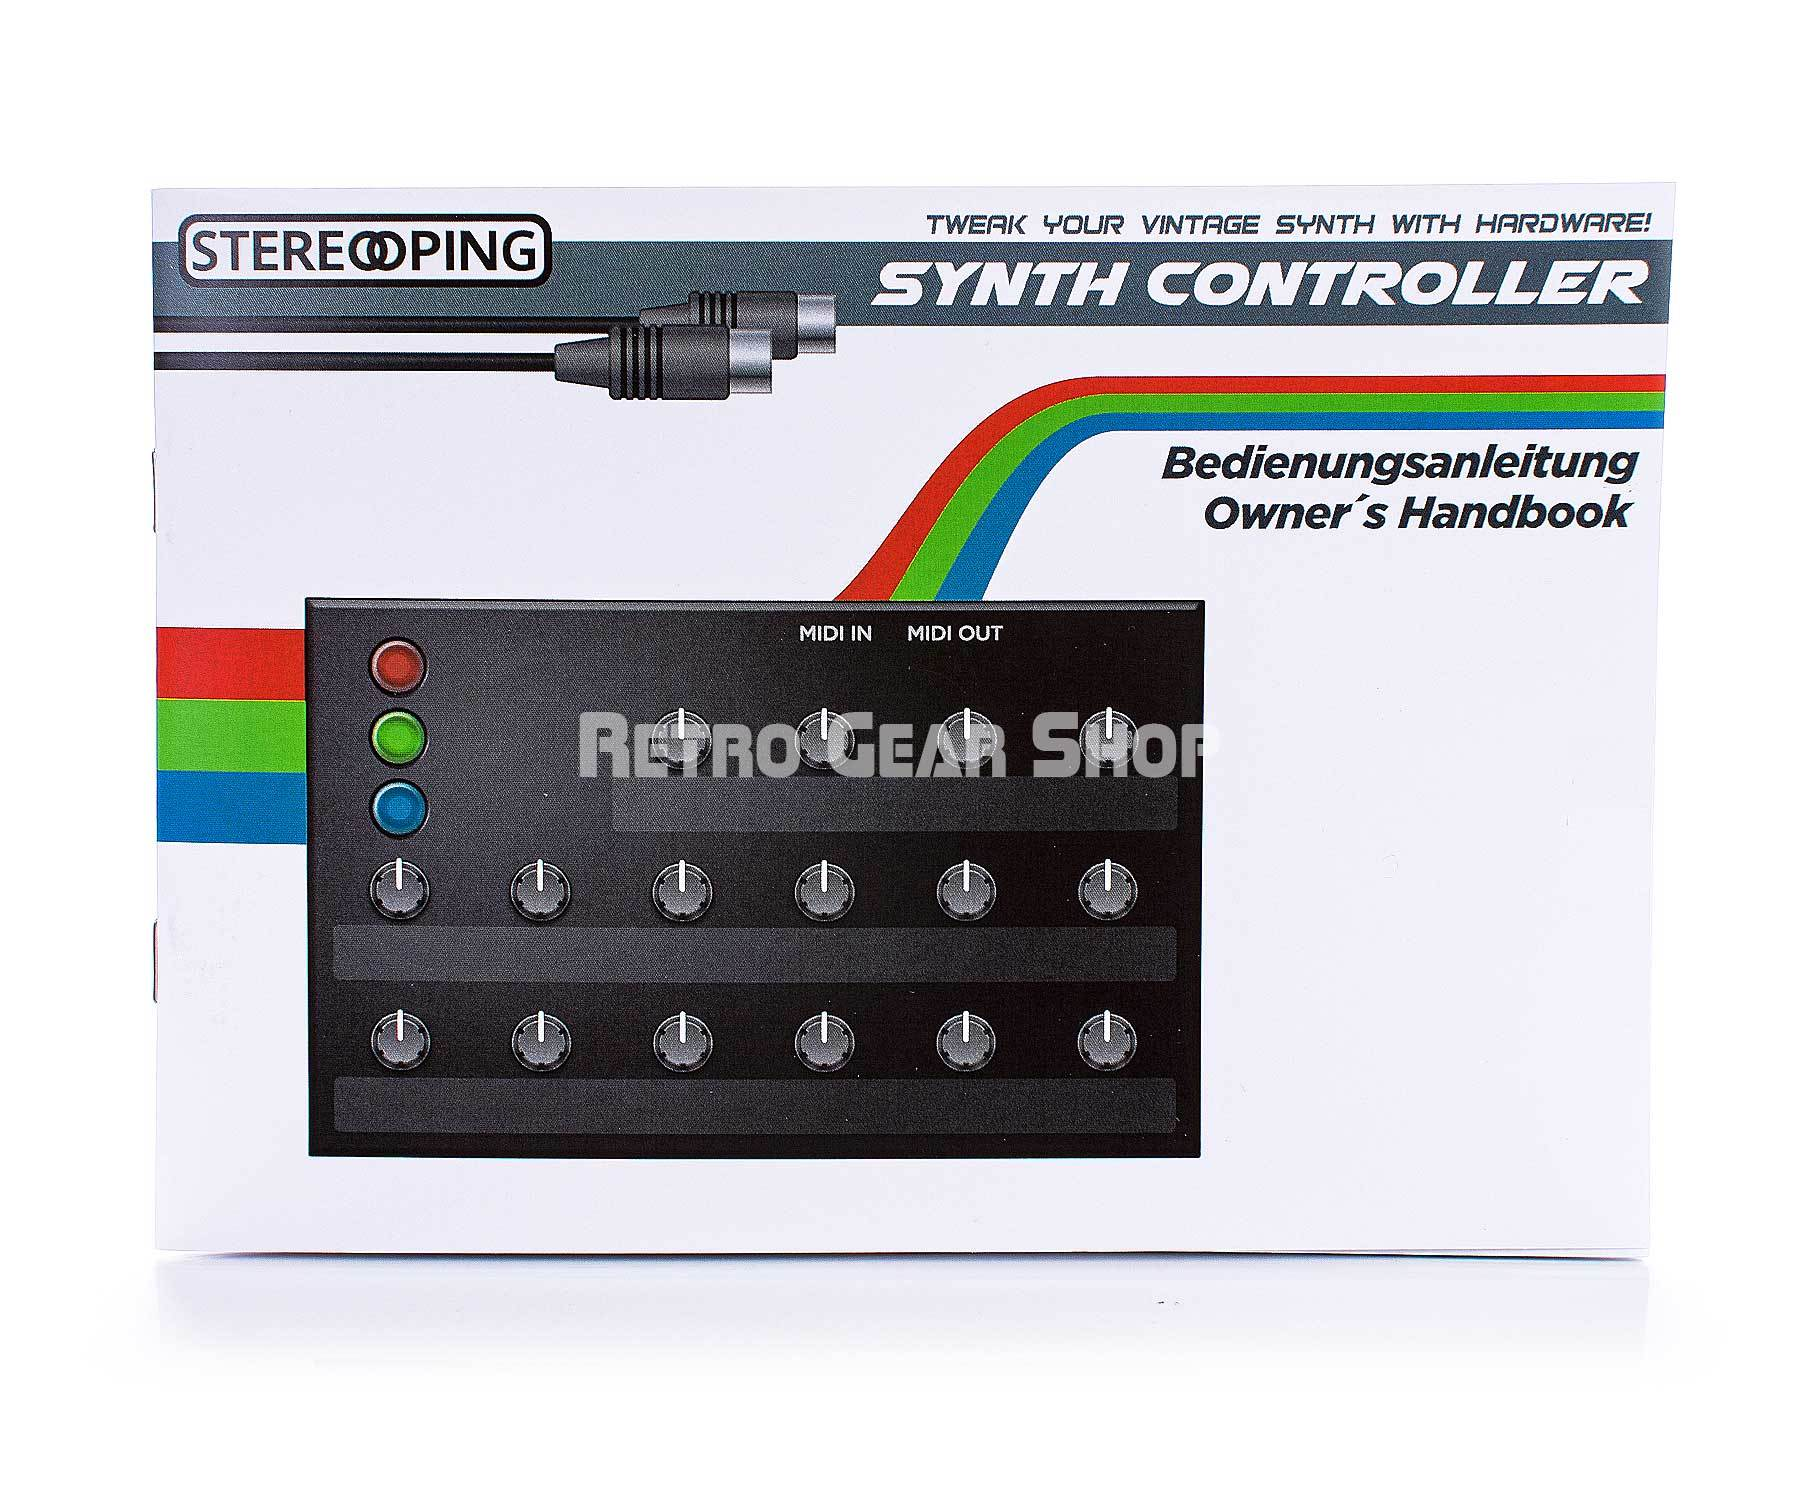 Stereoping CE-1 Midi Synthesizer Controller Böhm Dynamic 4x9 Manual